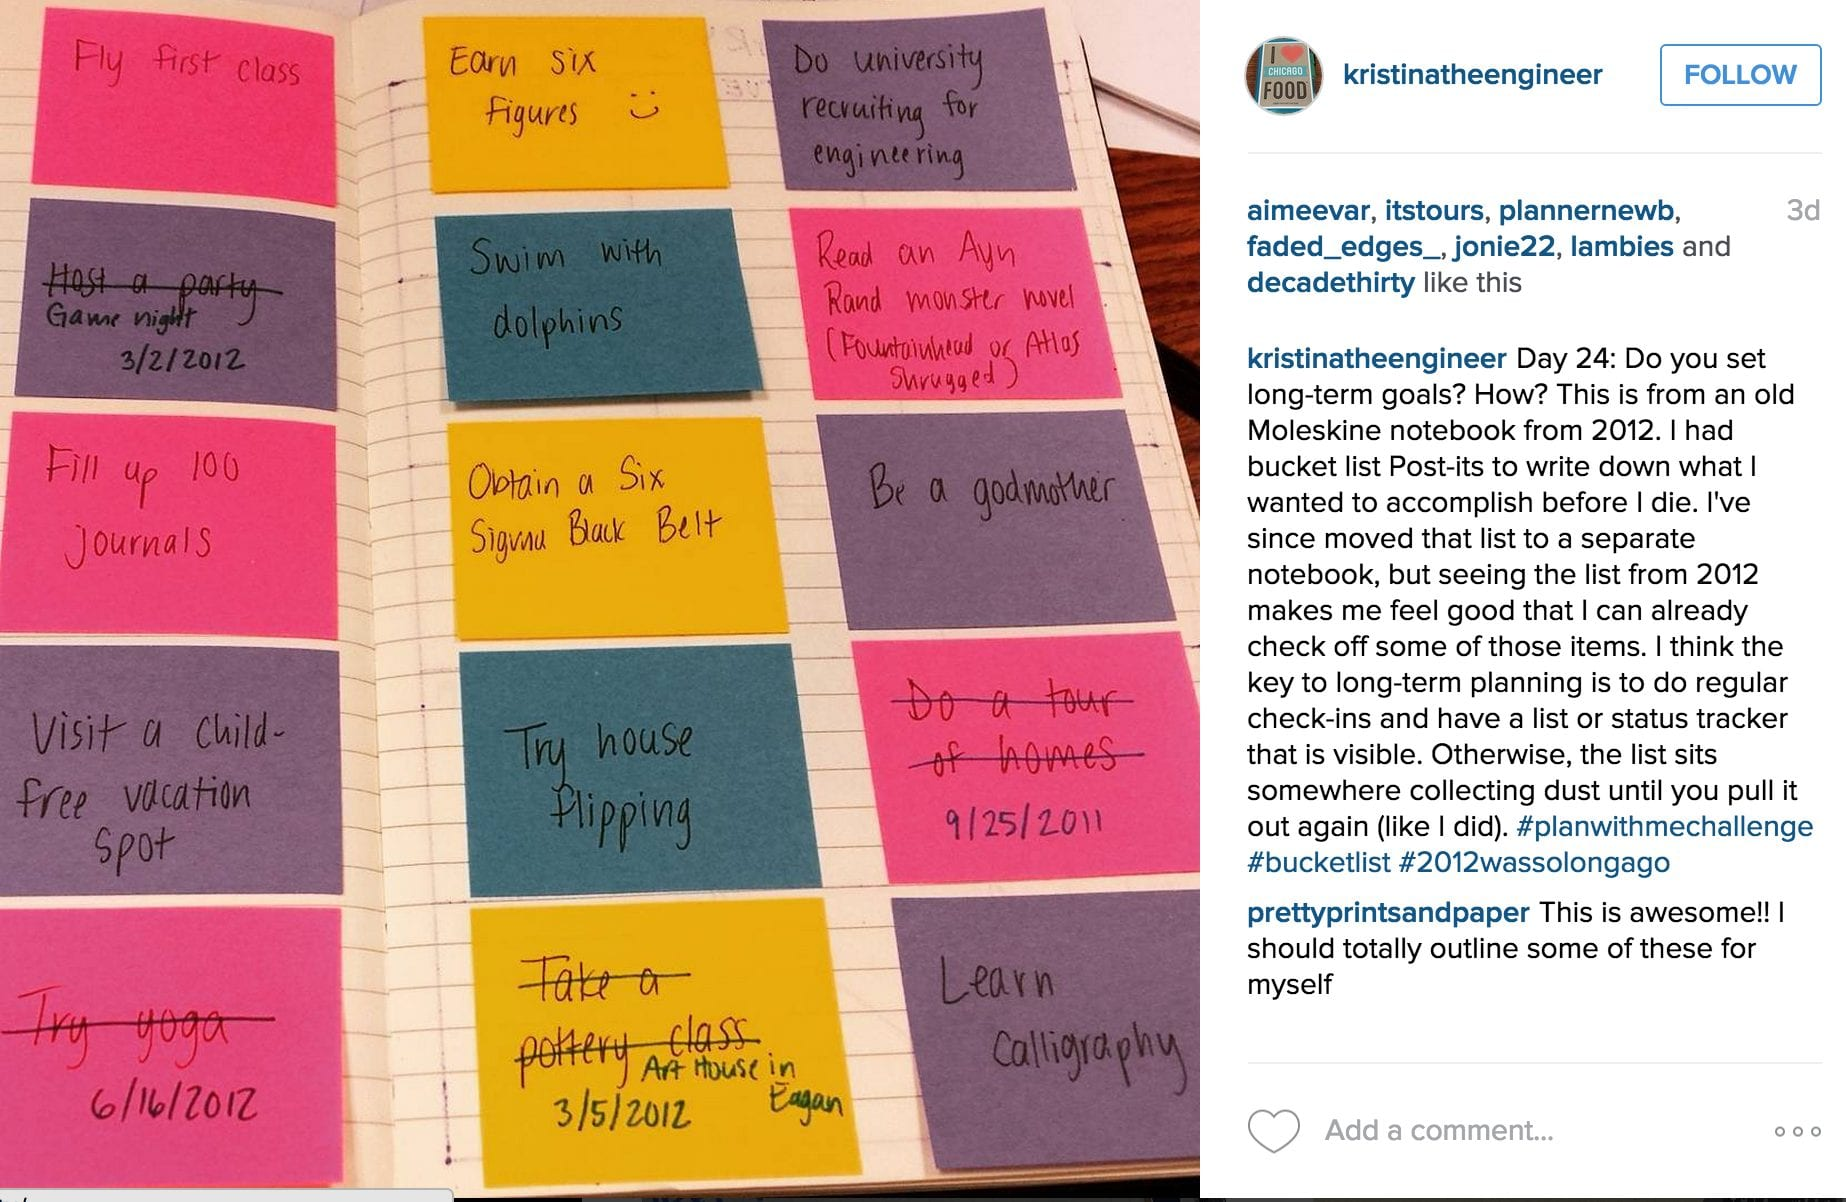 Another fun way to use those post-its I'm sure we all have around somewhere - I love that she went back and noted when she accomplished that goal!